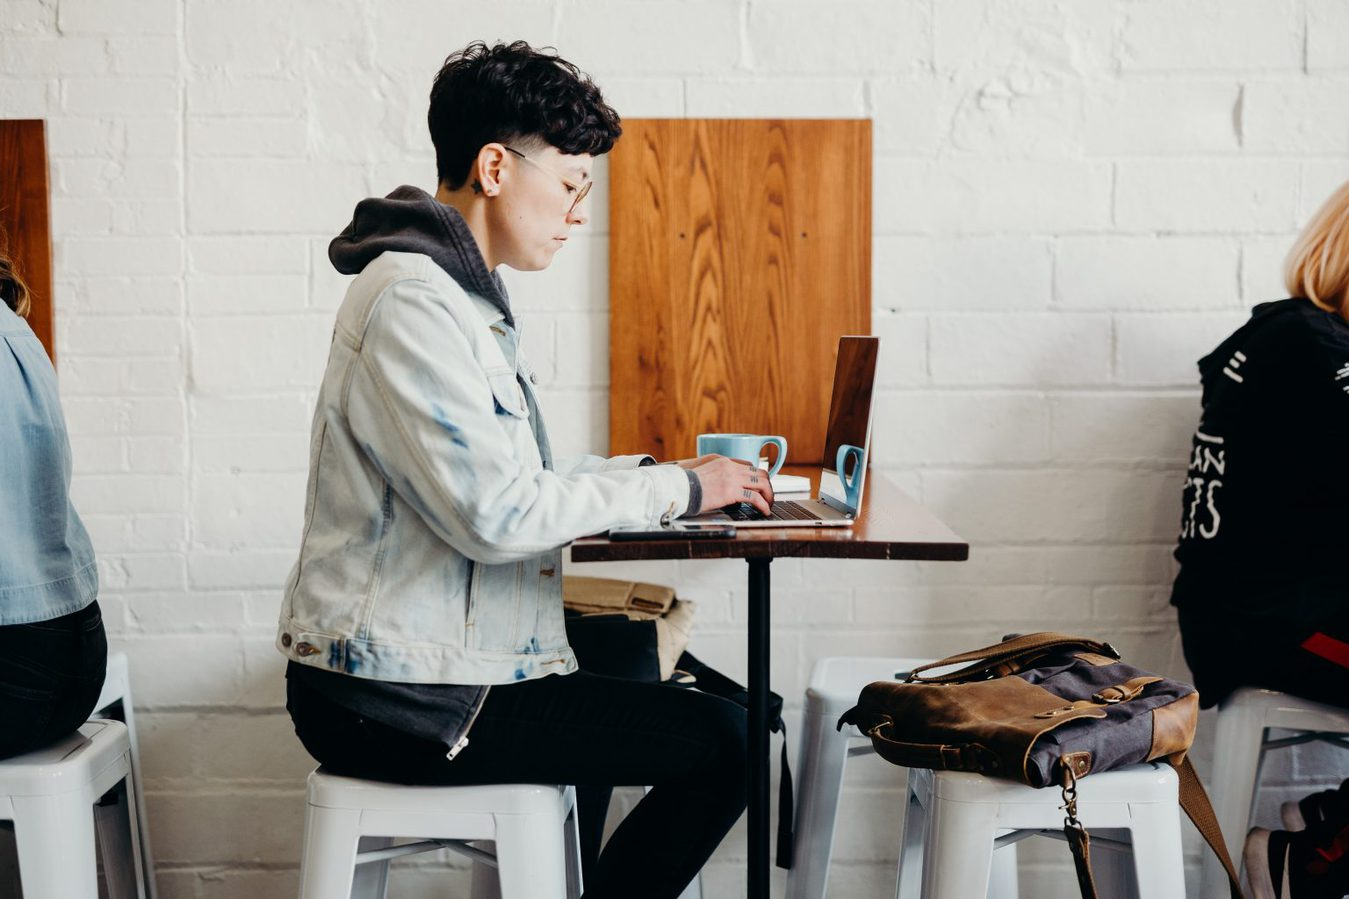 side shot of person sitting on stool in cafe with a laptop